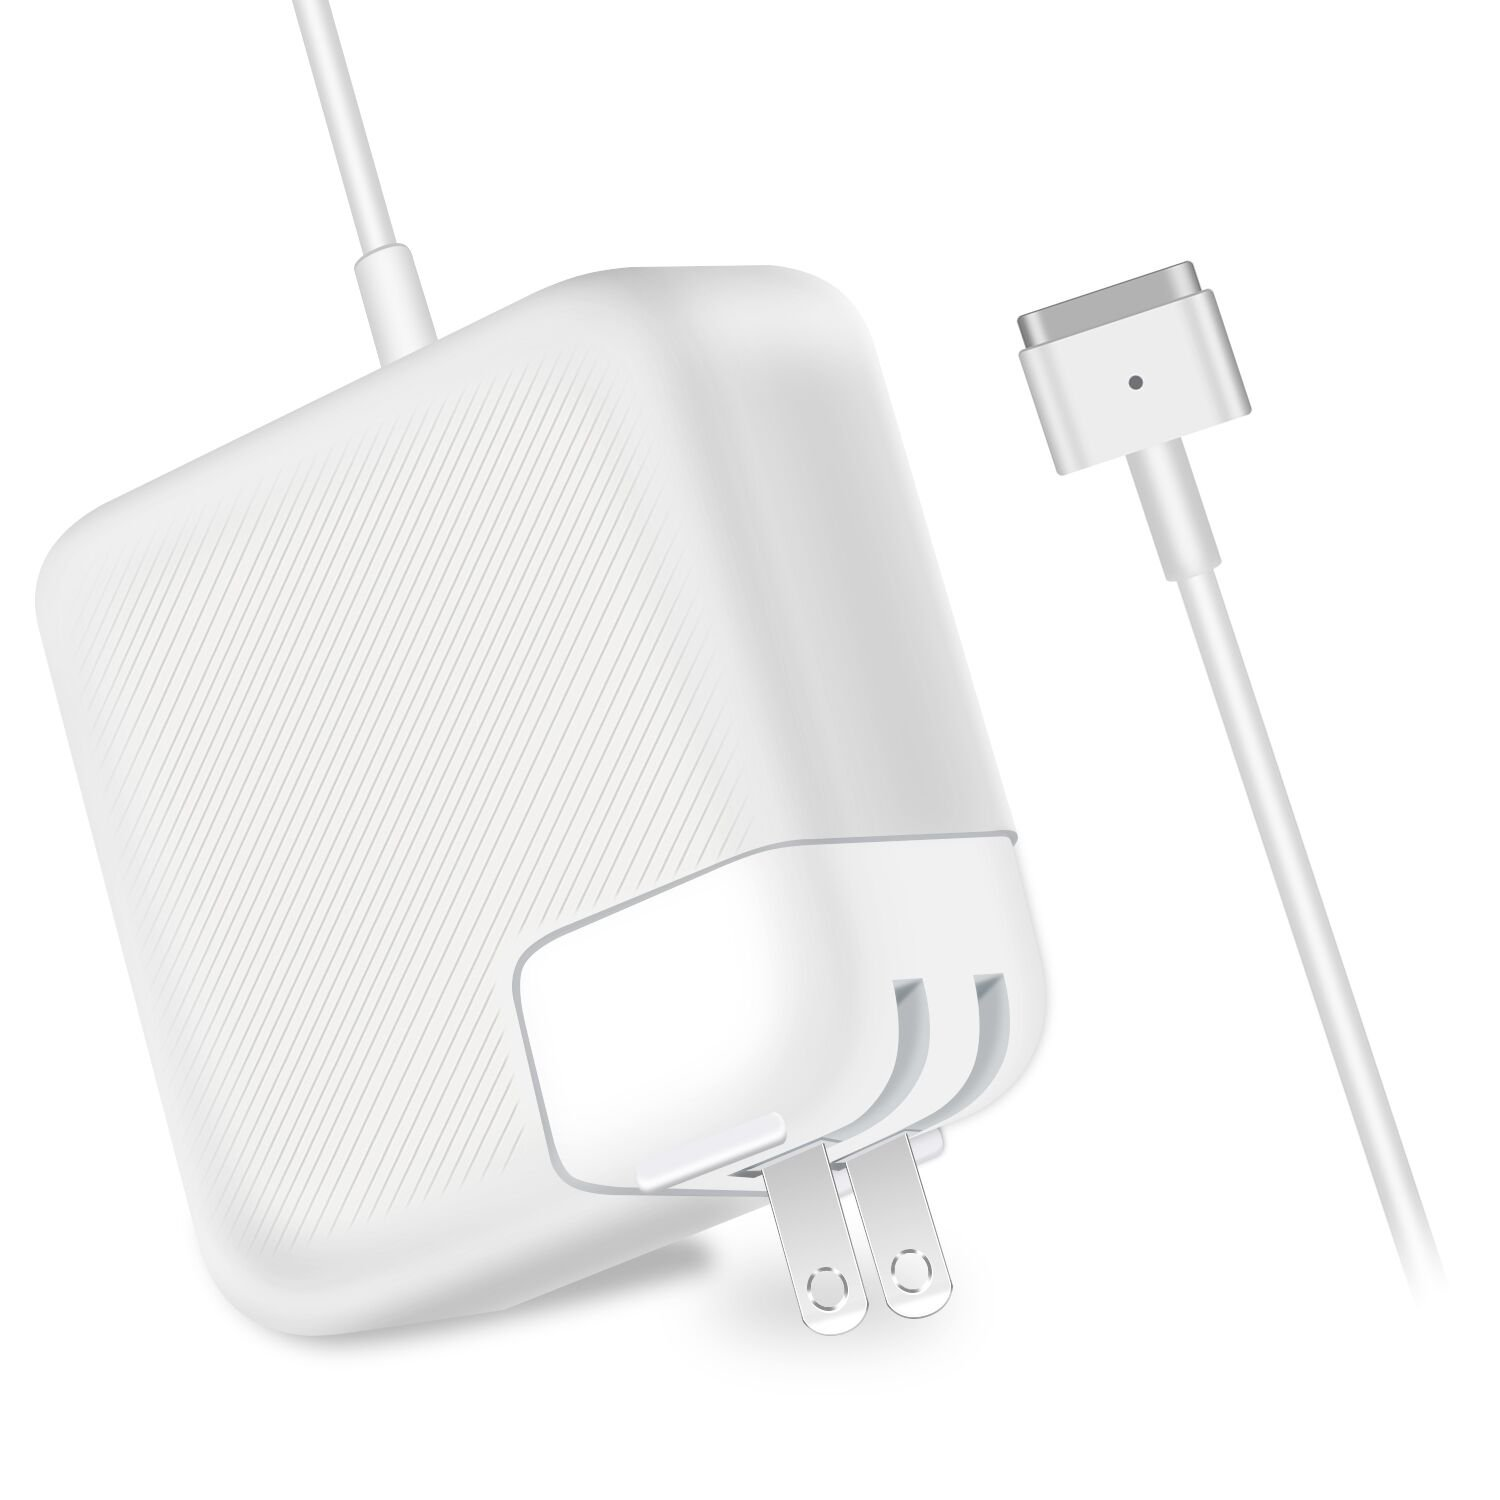 Macbook Pro Charger, 85w Magsafe2 Power Adapter Charger Replacement for MacBook Pro with Retina Display ( After Mid 2012 )